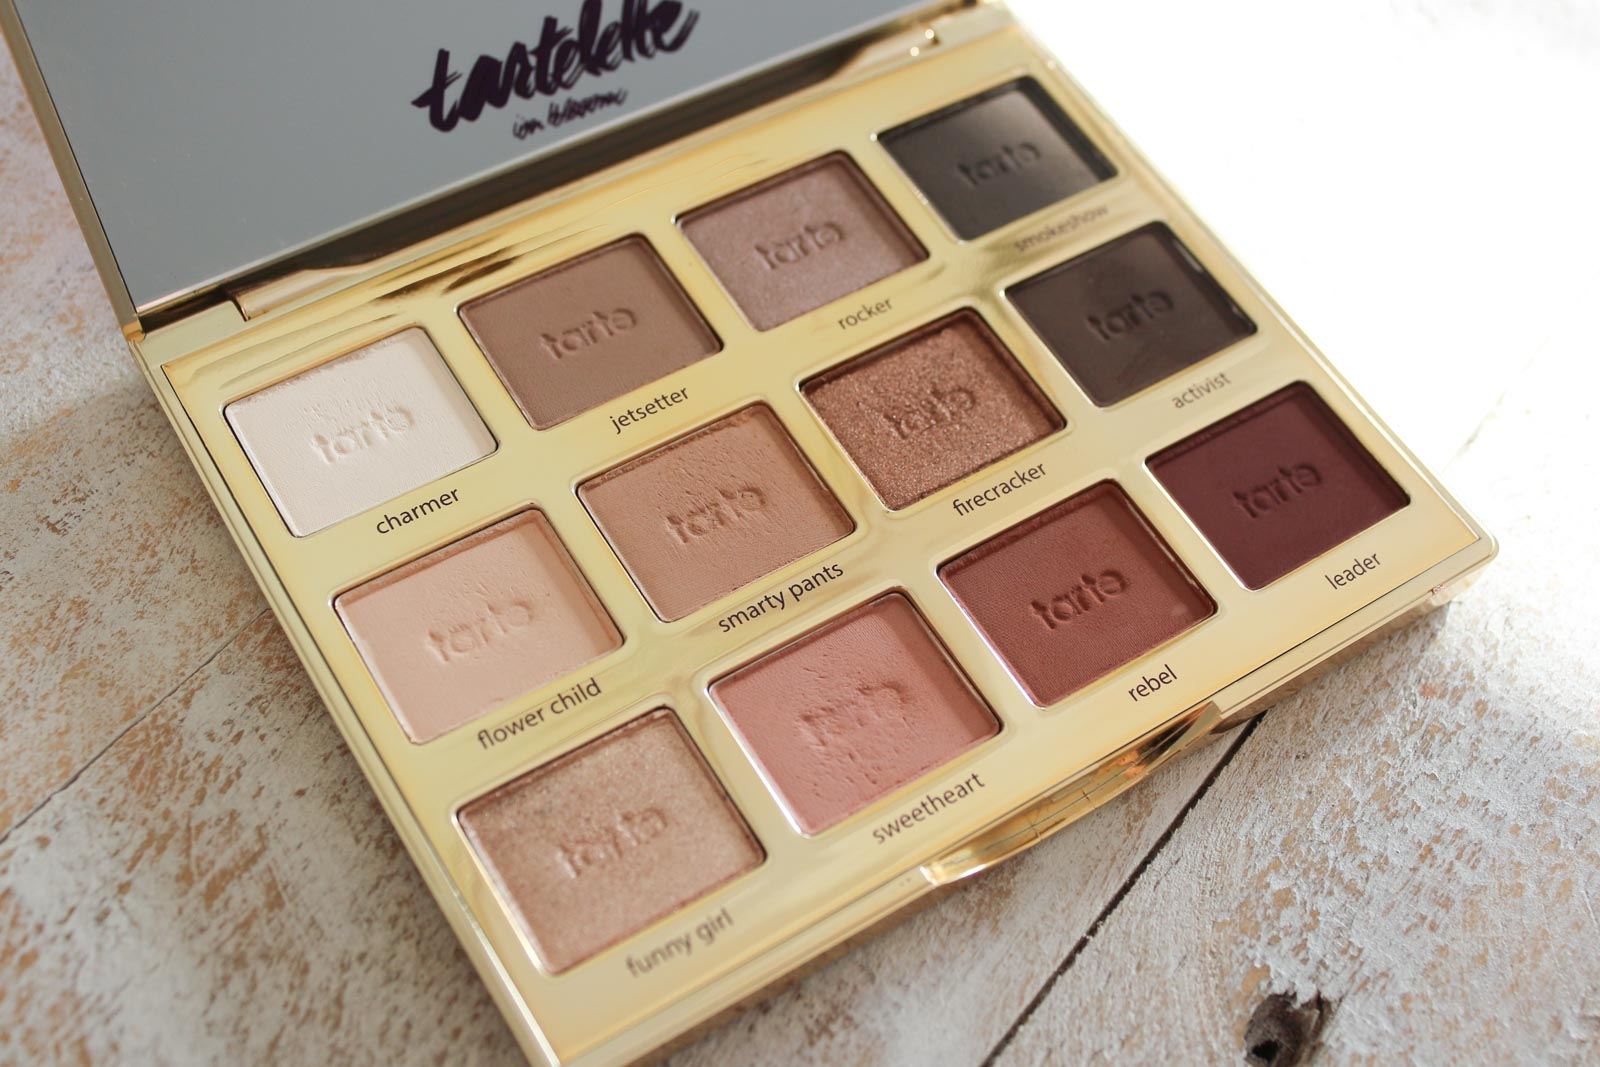 Tarte Tartelette In Bloom Clay Palette With Swatches | Cate Renée